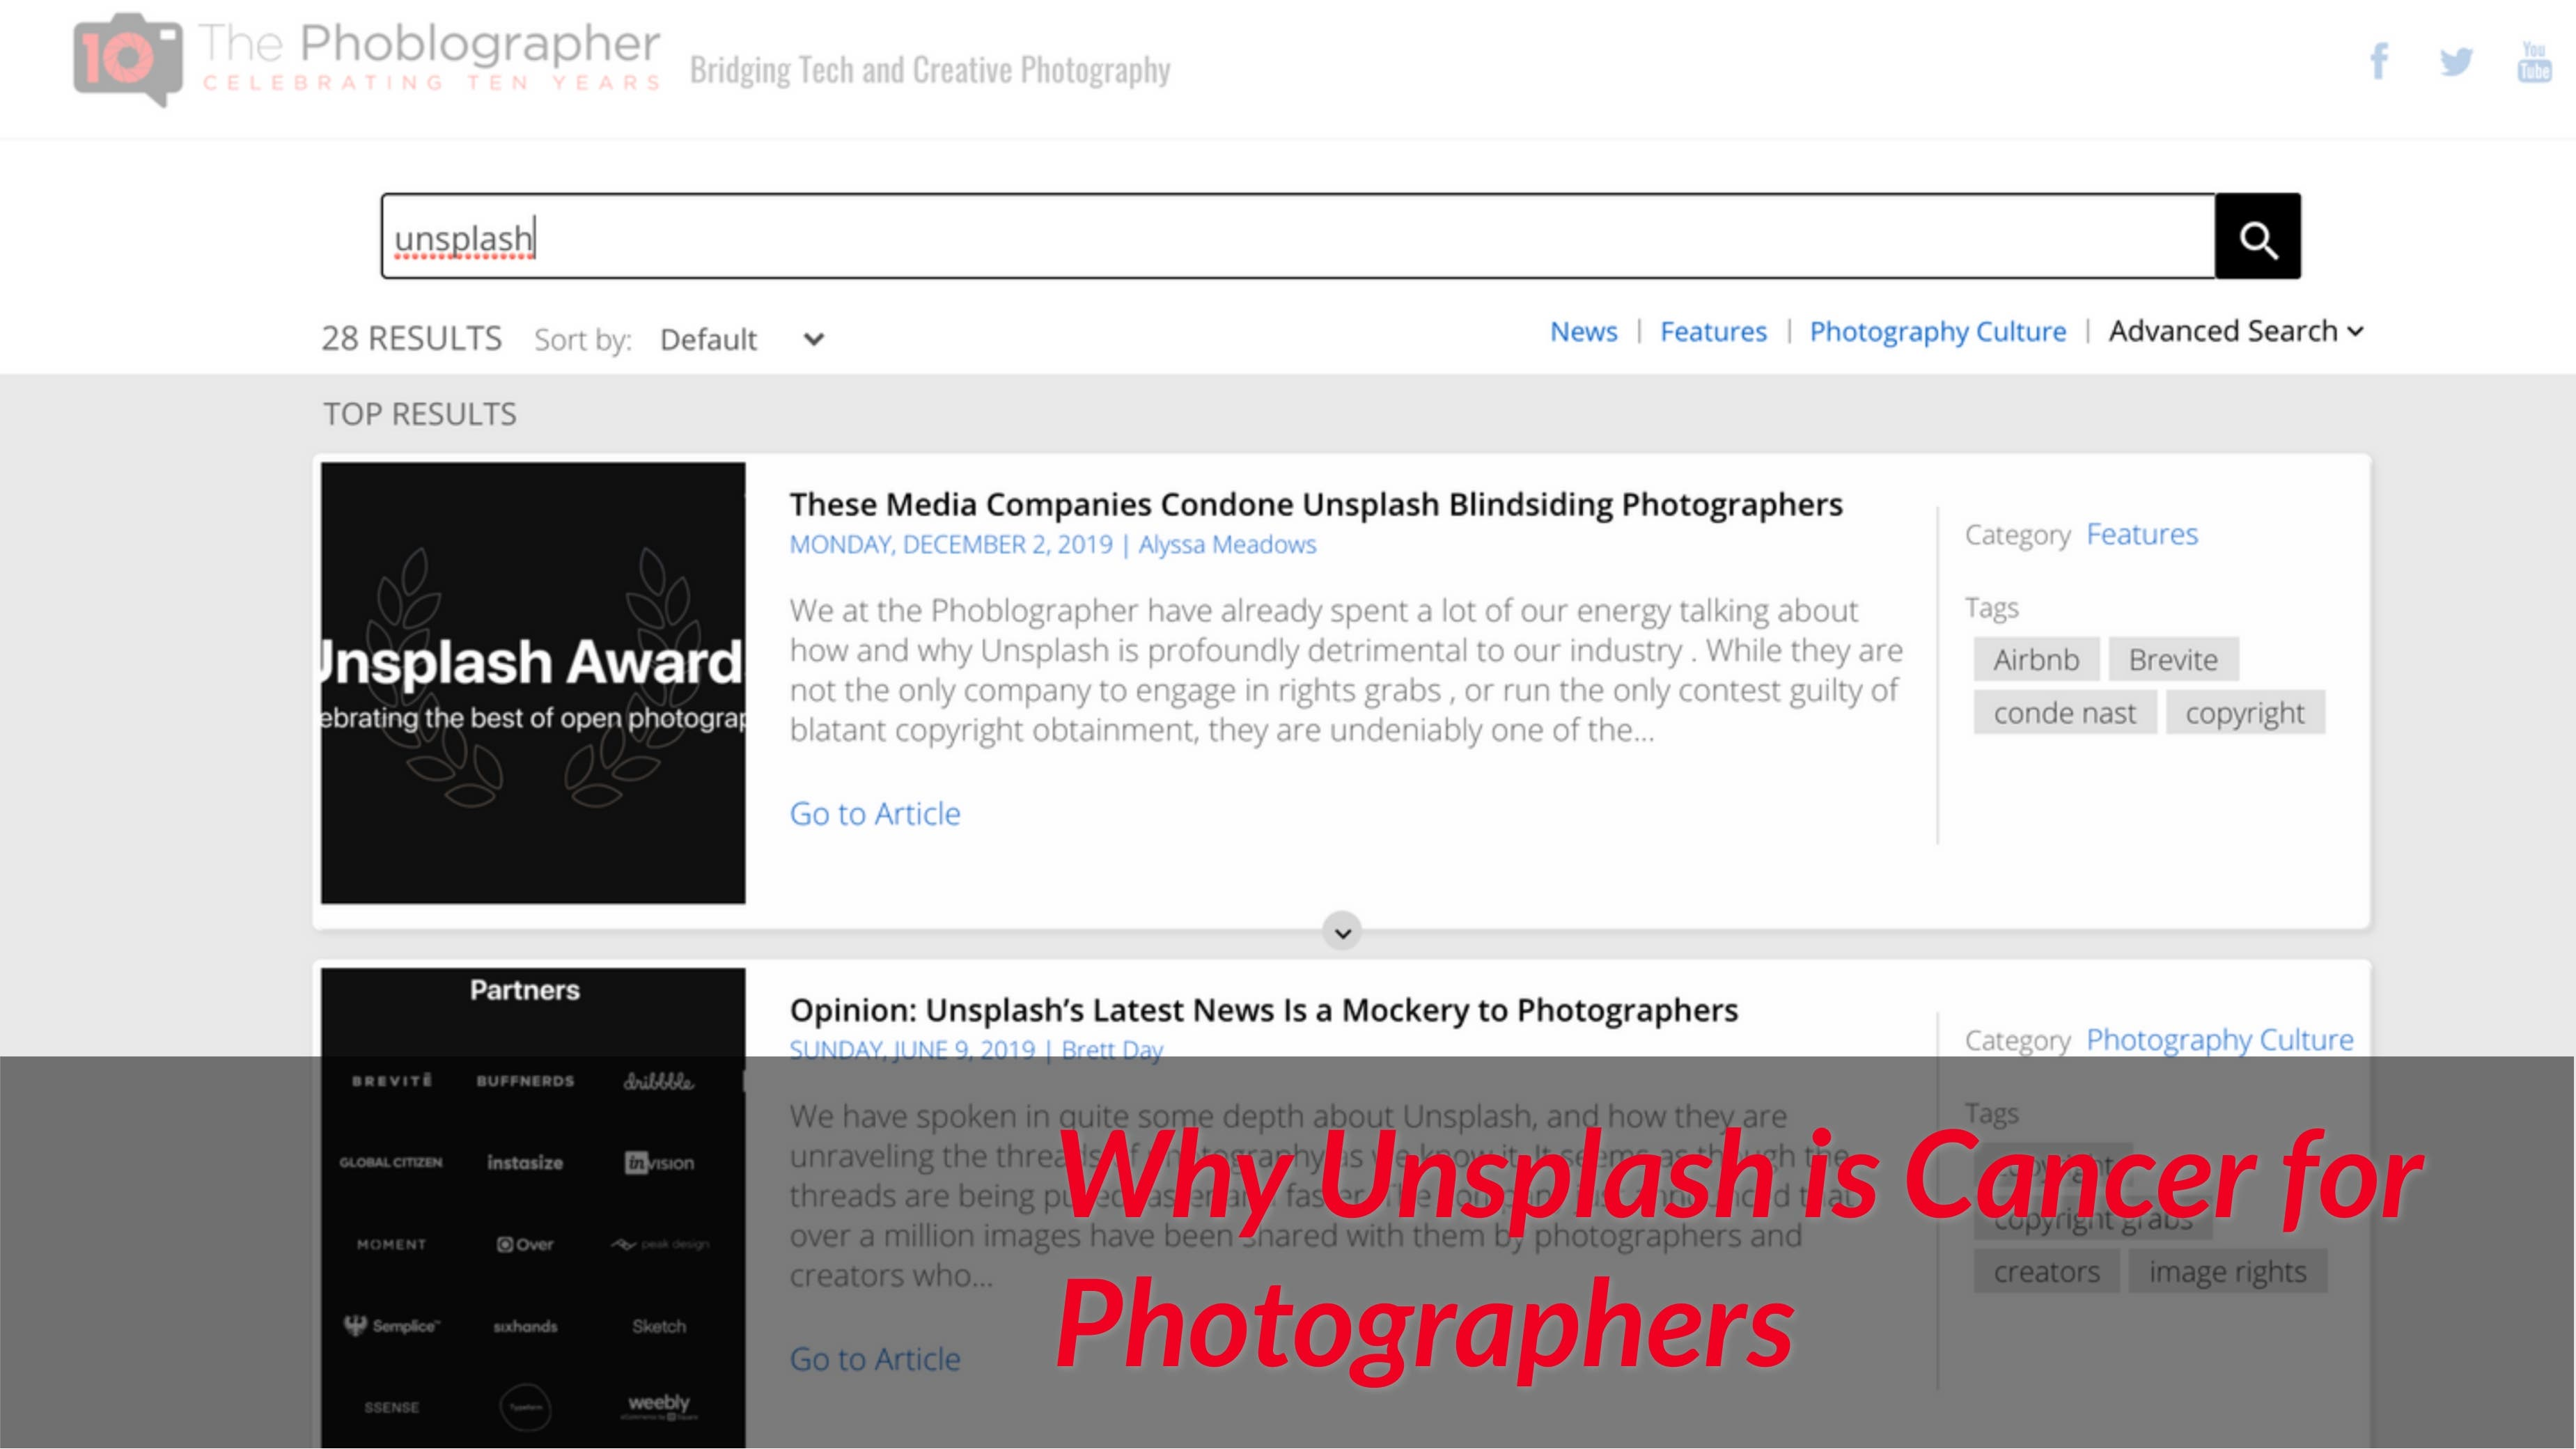 The Reasons Why Unsplash is Cancer for Photographers